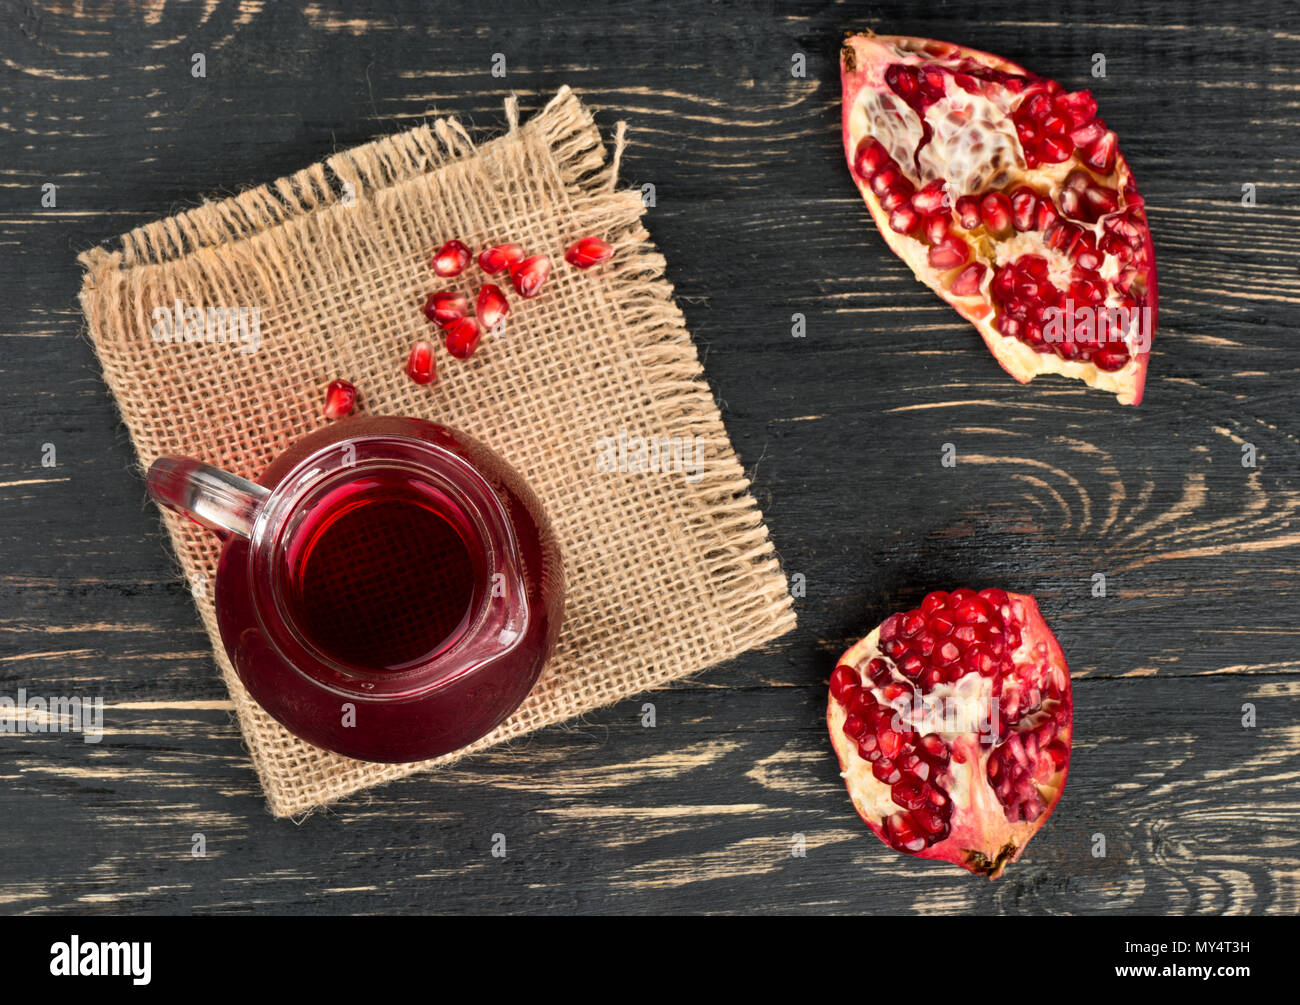 Delicious pomegranate juice with slices and beans on sackcloth and table - Stock Image